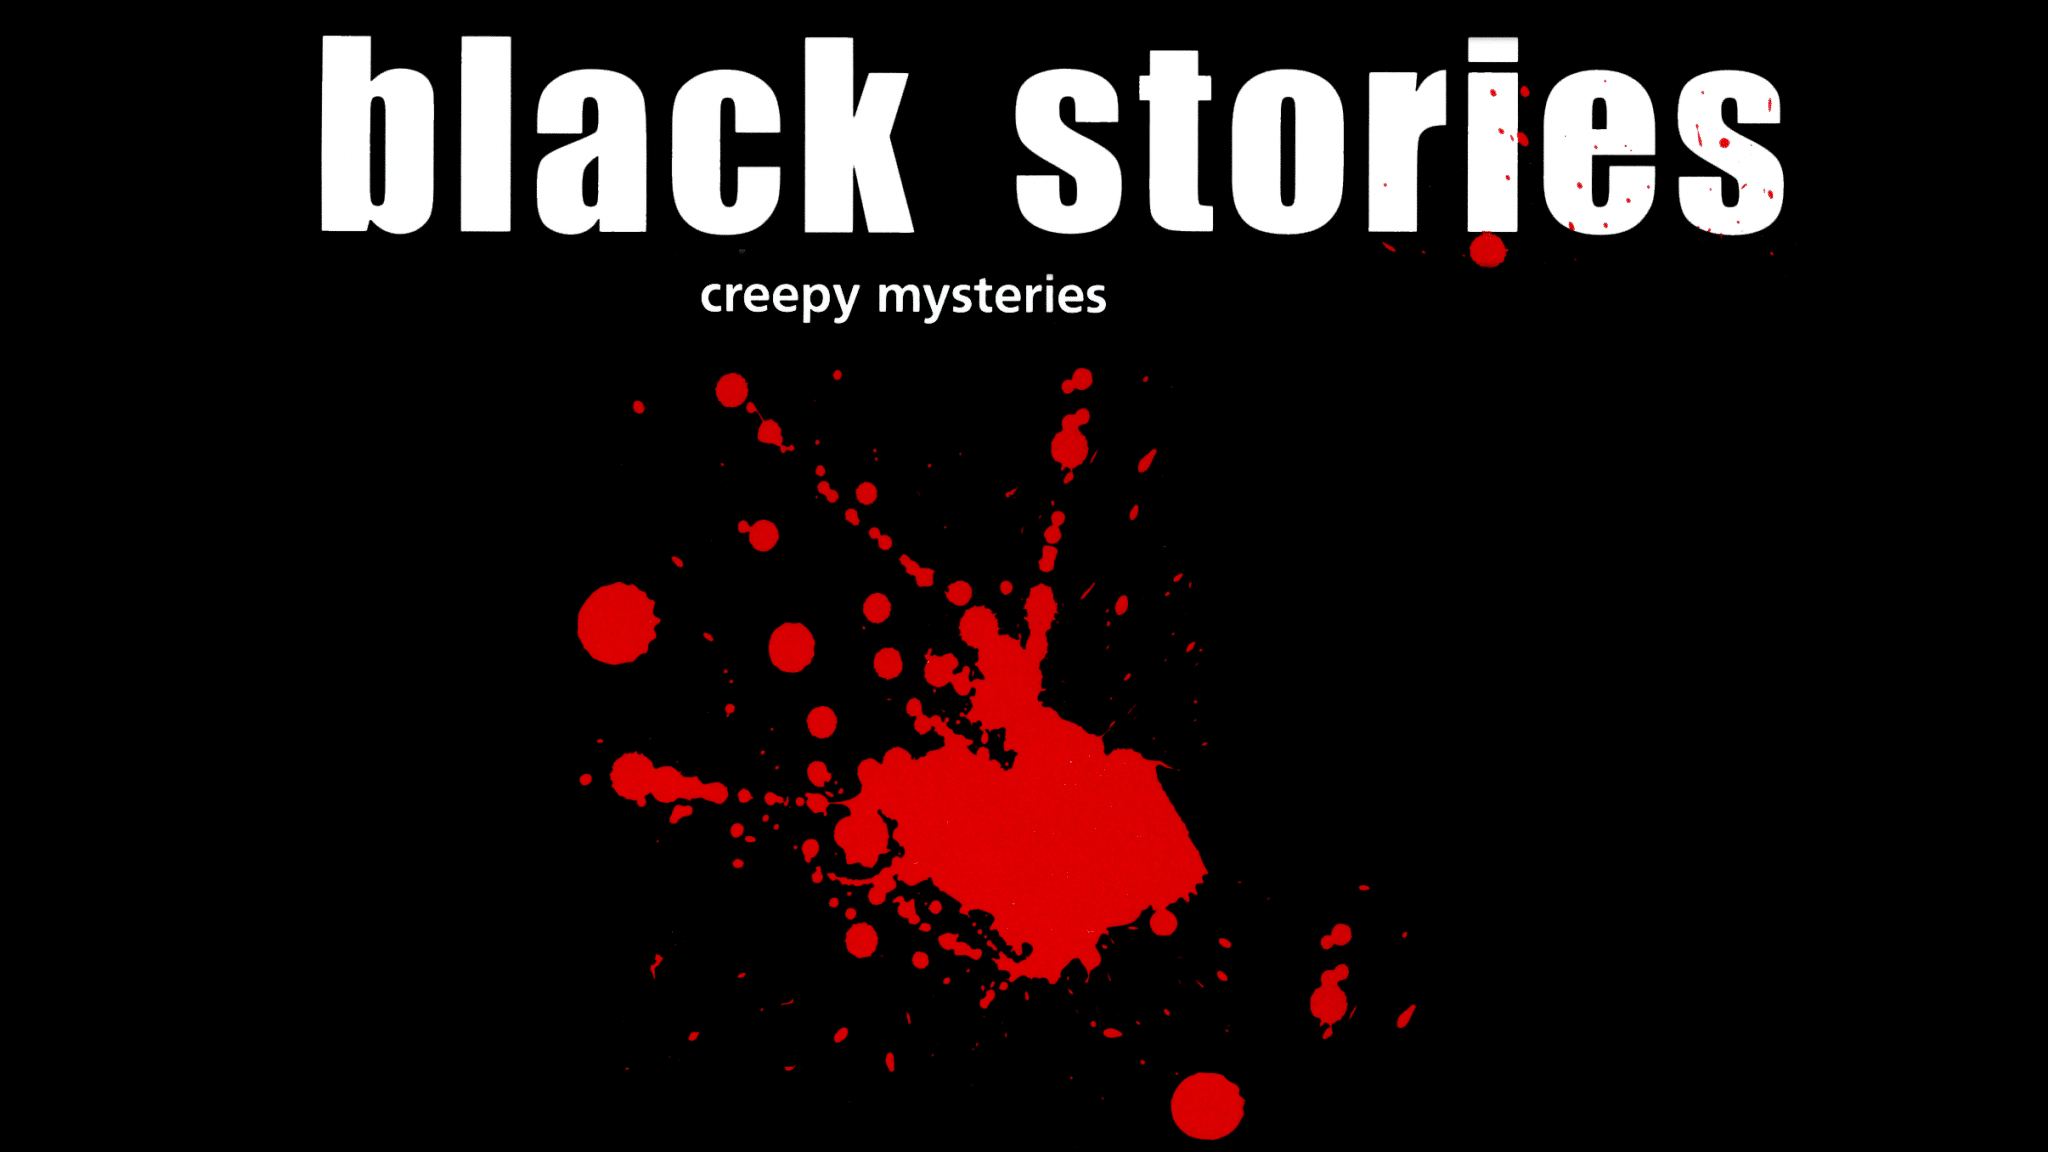 Black Stories title